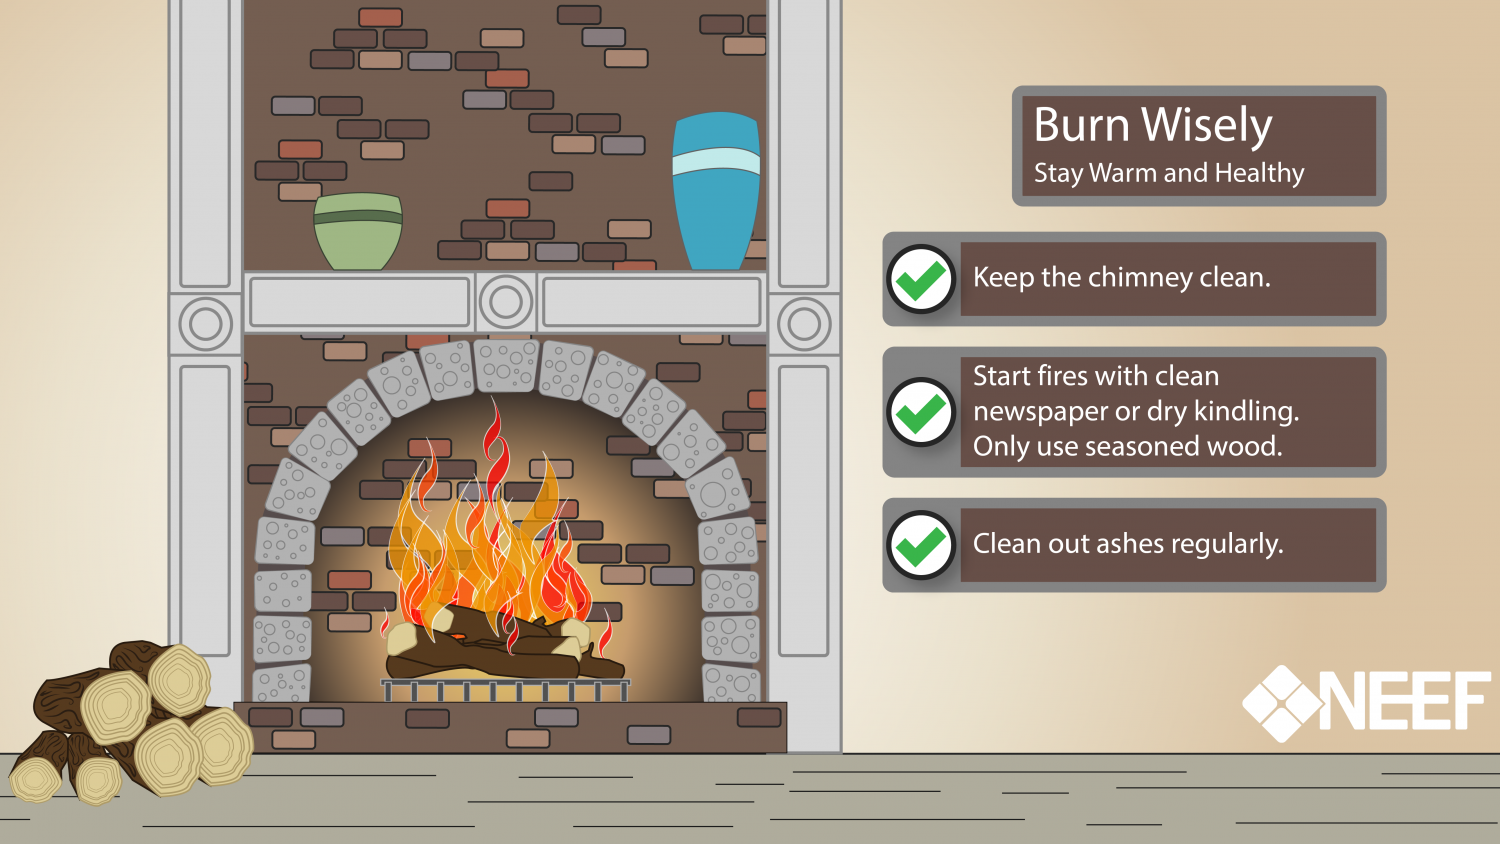 Burn wisely infographic